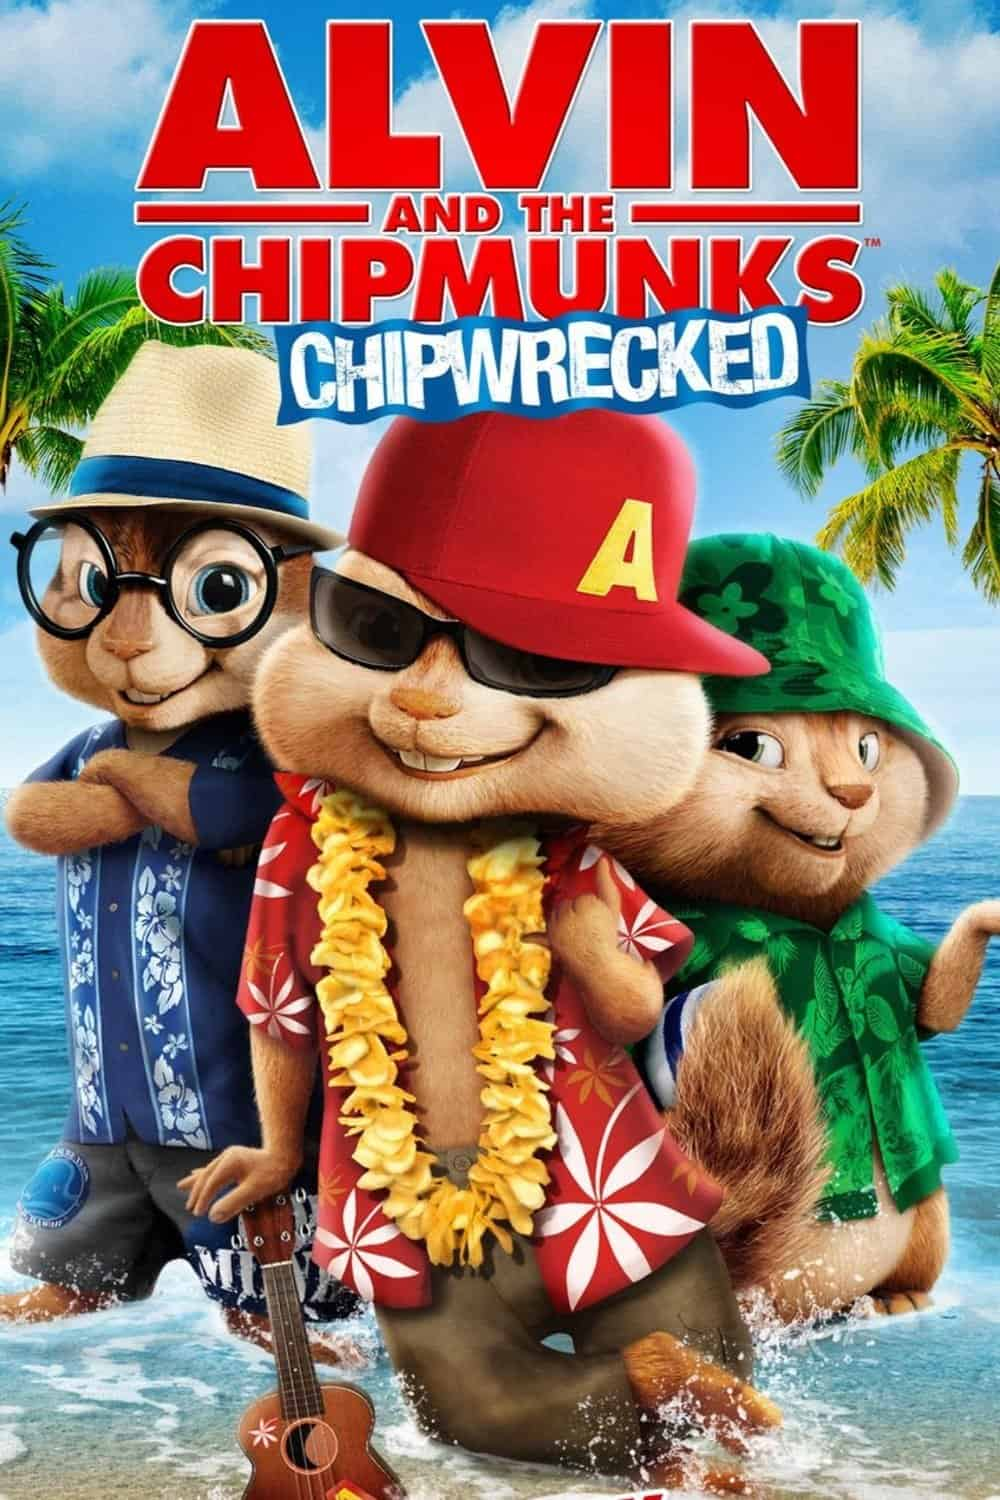 Alvin and the Chipmunks: Chipwrecked, 2011